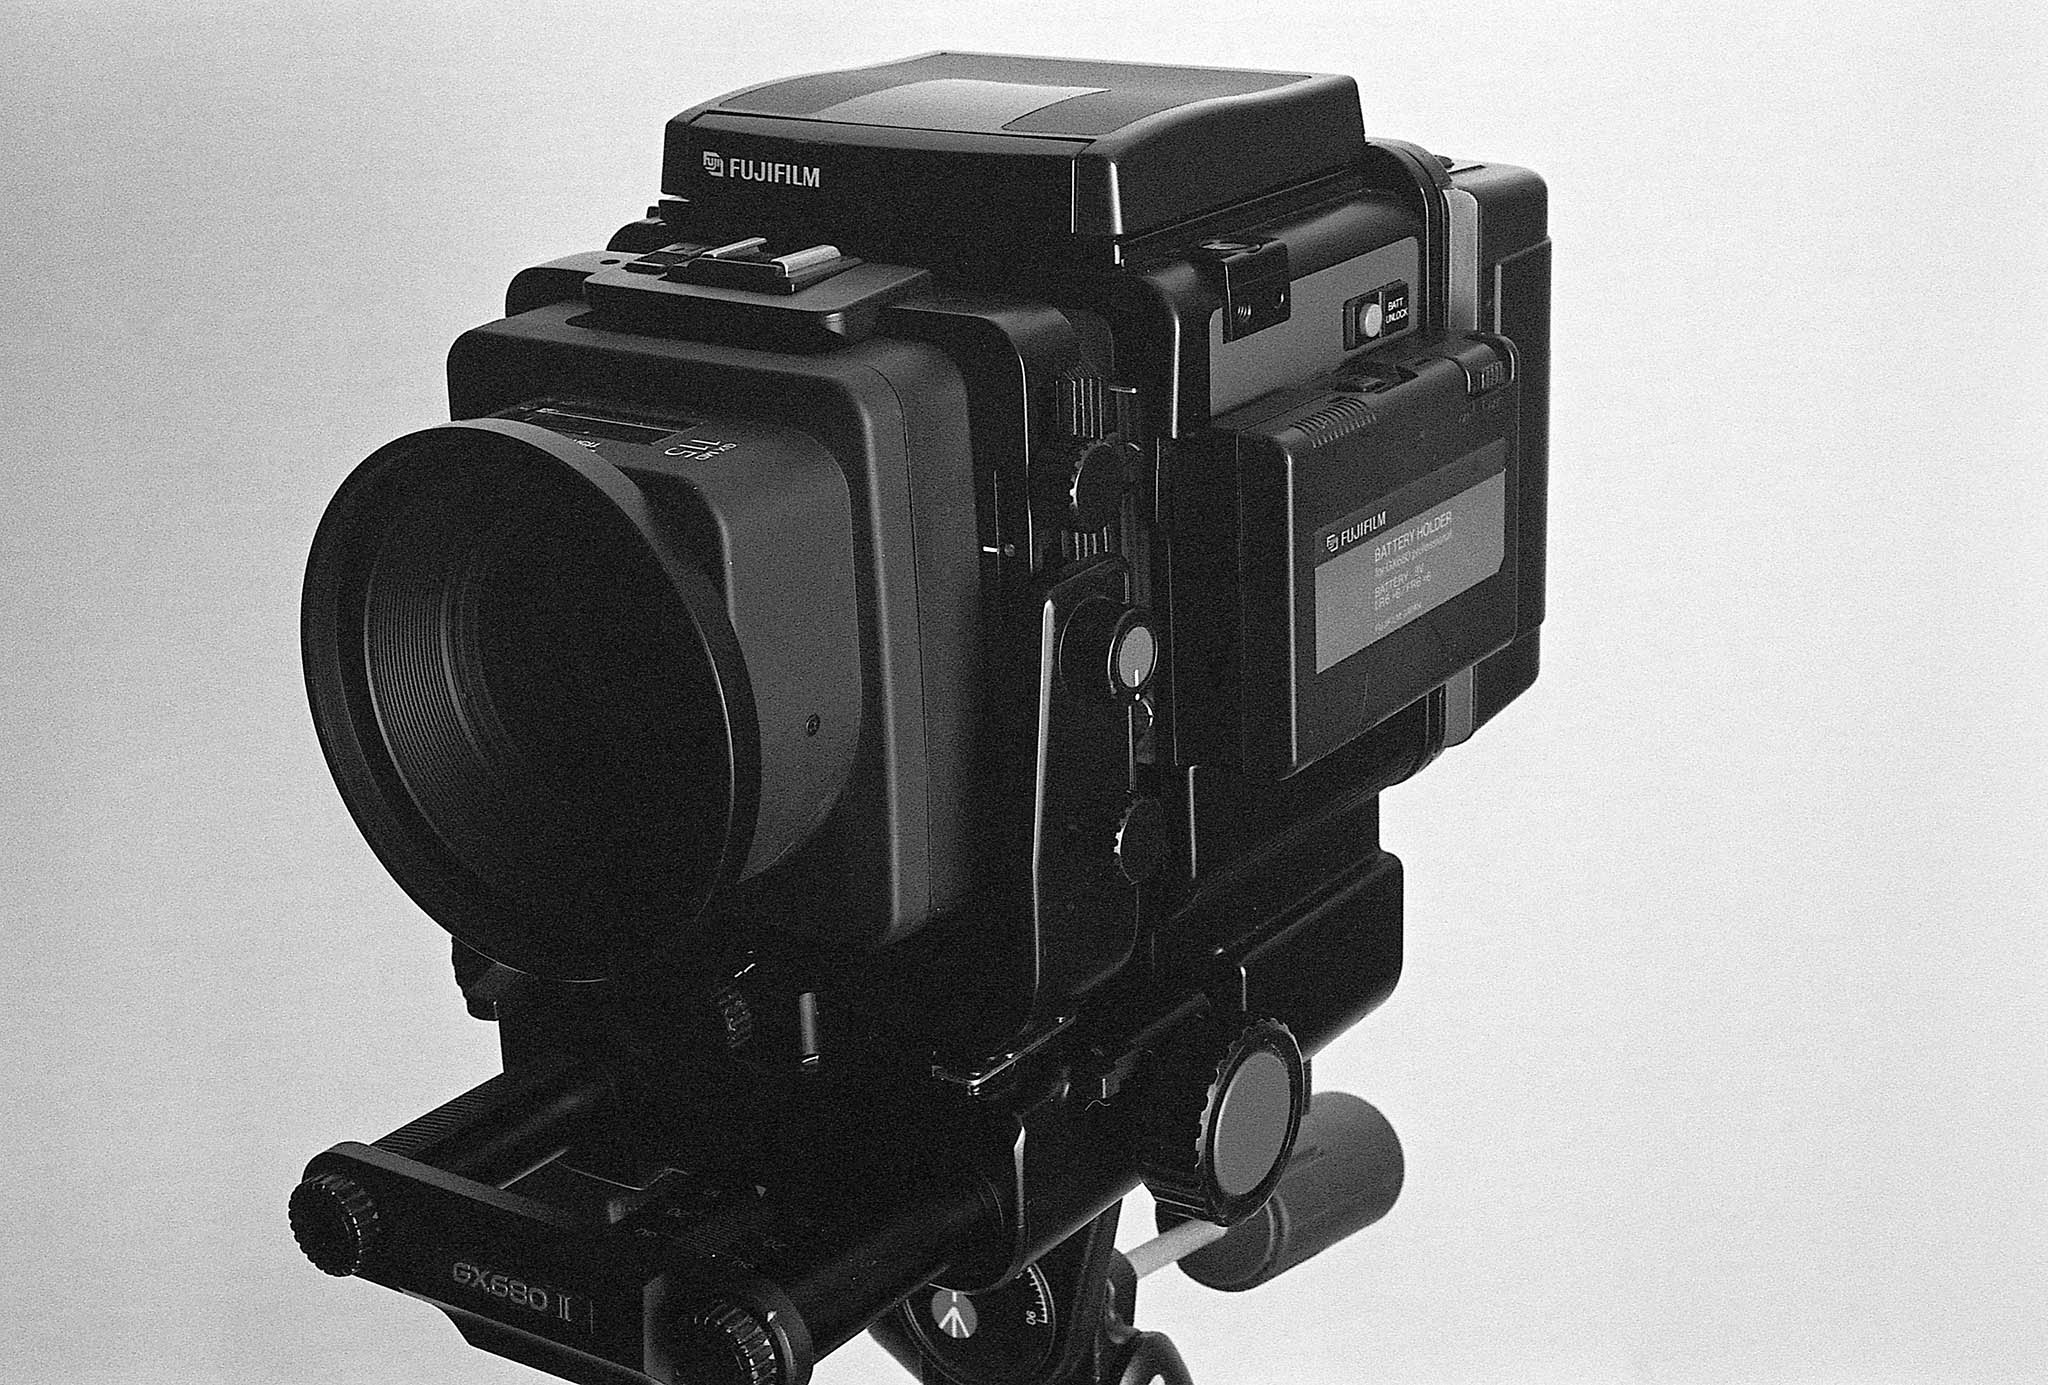 A medium format camera that behaves like a large format